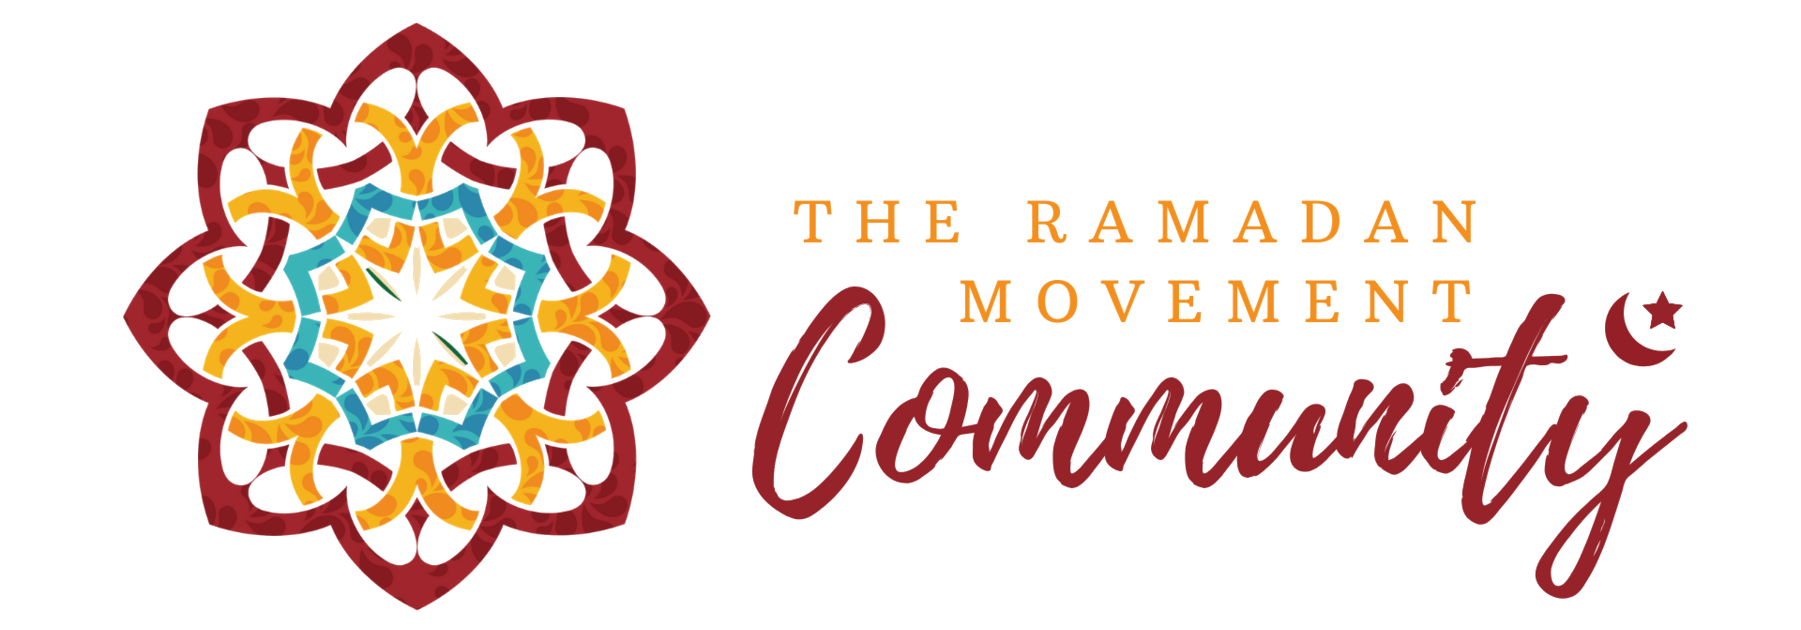 The Ramadan Movement Community